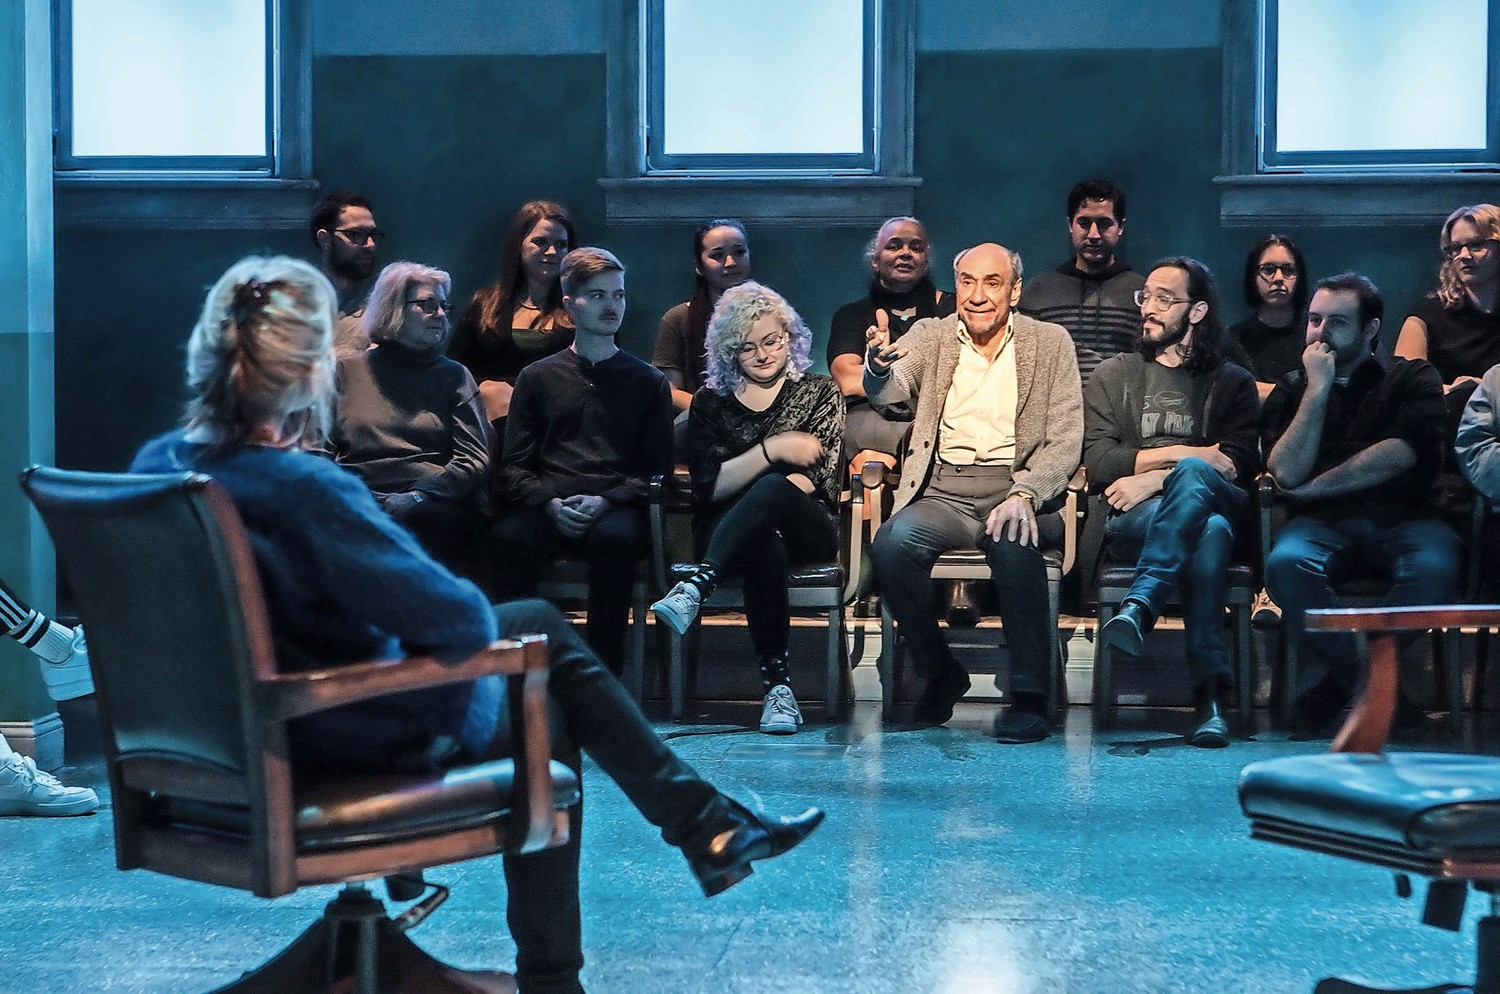 F. Murray Abraham knows how to stand out in the crowd, even when he shares the stage with Amy Madigan, back, in David Rabe's 'Good for Otto,' now playing at the Pershing Square Signature Center.